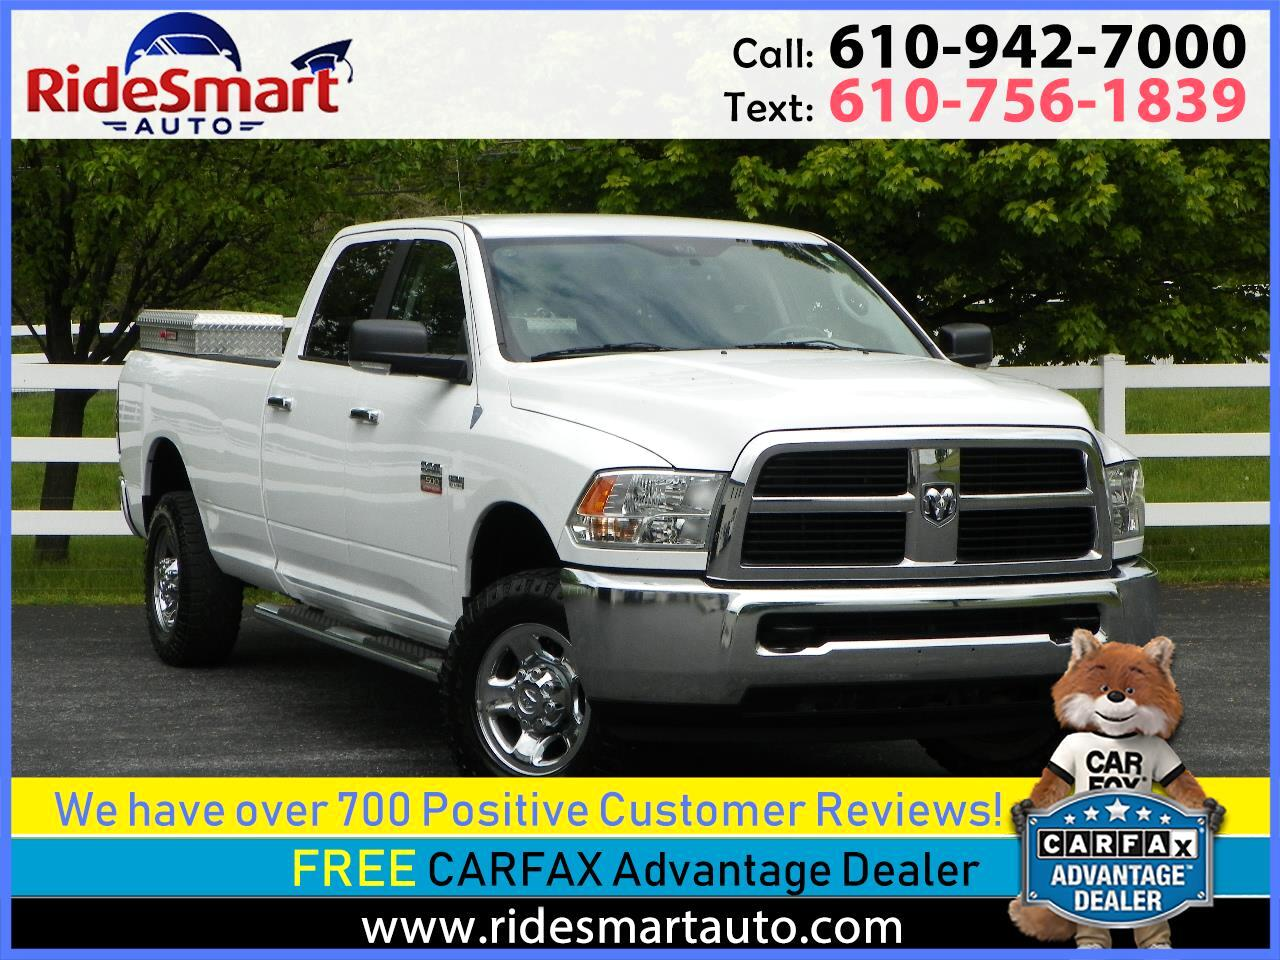 2012 RAM 2500 SLT Crew Cab Long Bed 4WD Gas/GNG 5.7L